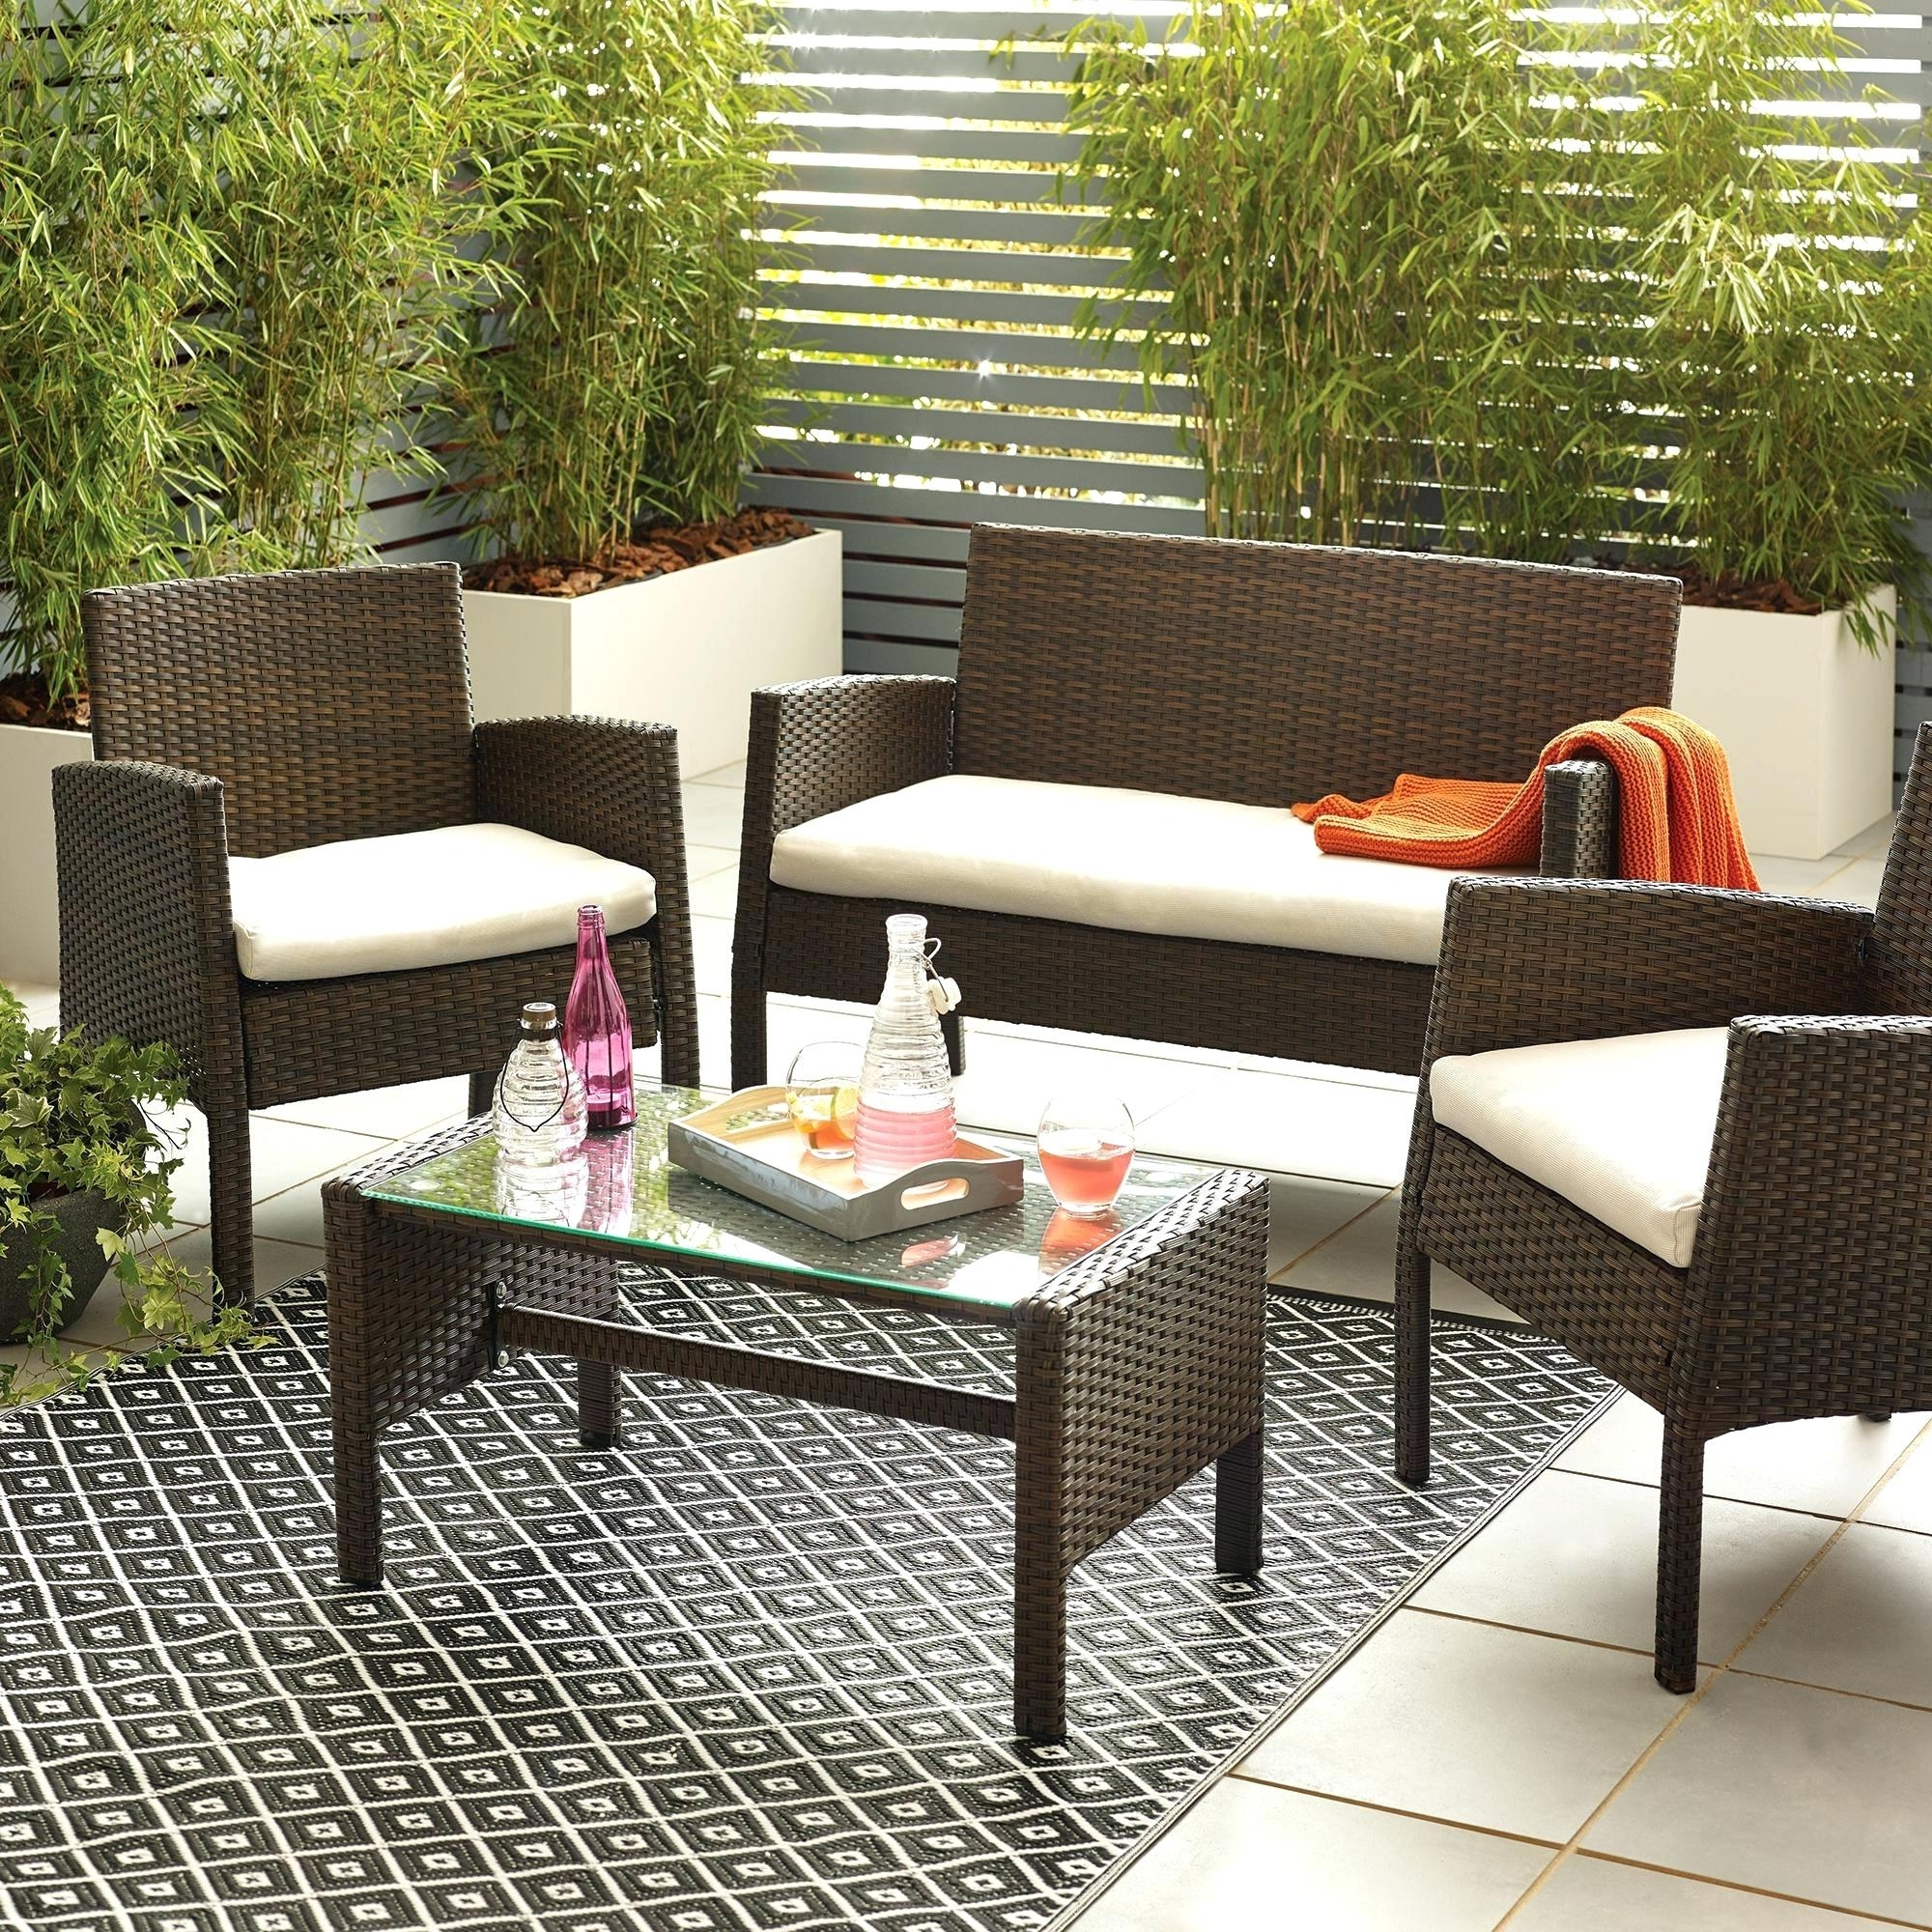 Best And Newest Wicker Sectional Patio Furniture Tags : Outdoor Furniture Inside Walmart Patio Furniture Conversation Sets (View 3 of 20)